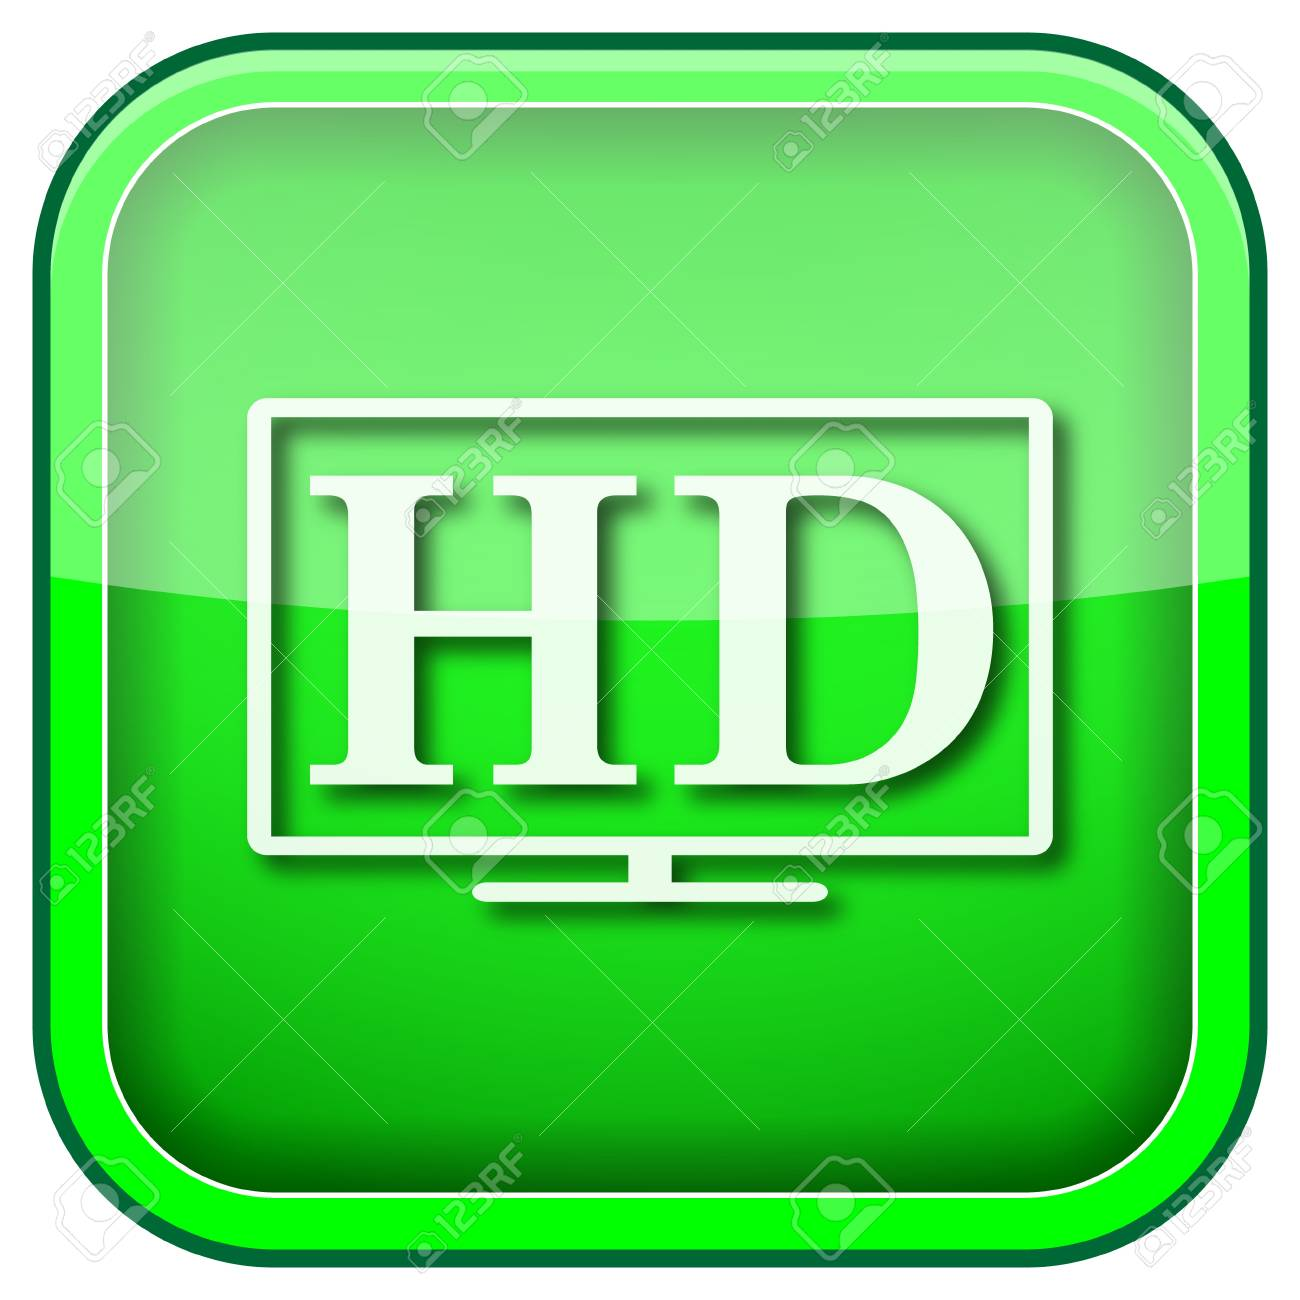 Square shiny icon with white design on green background Stock Photo - 21032868